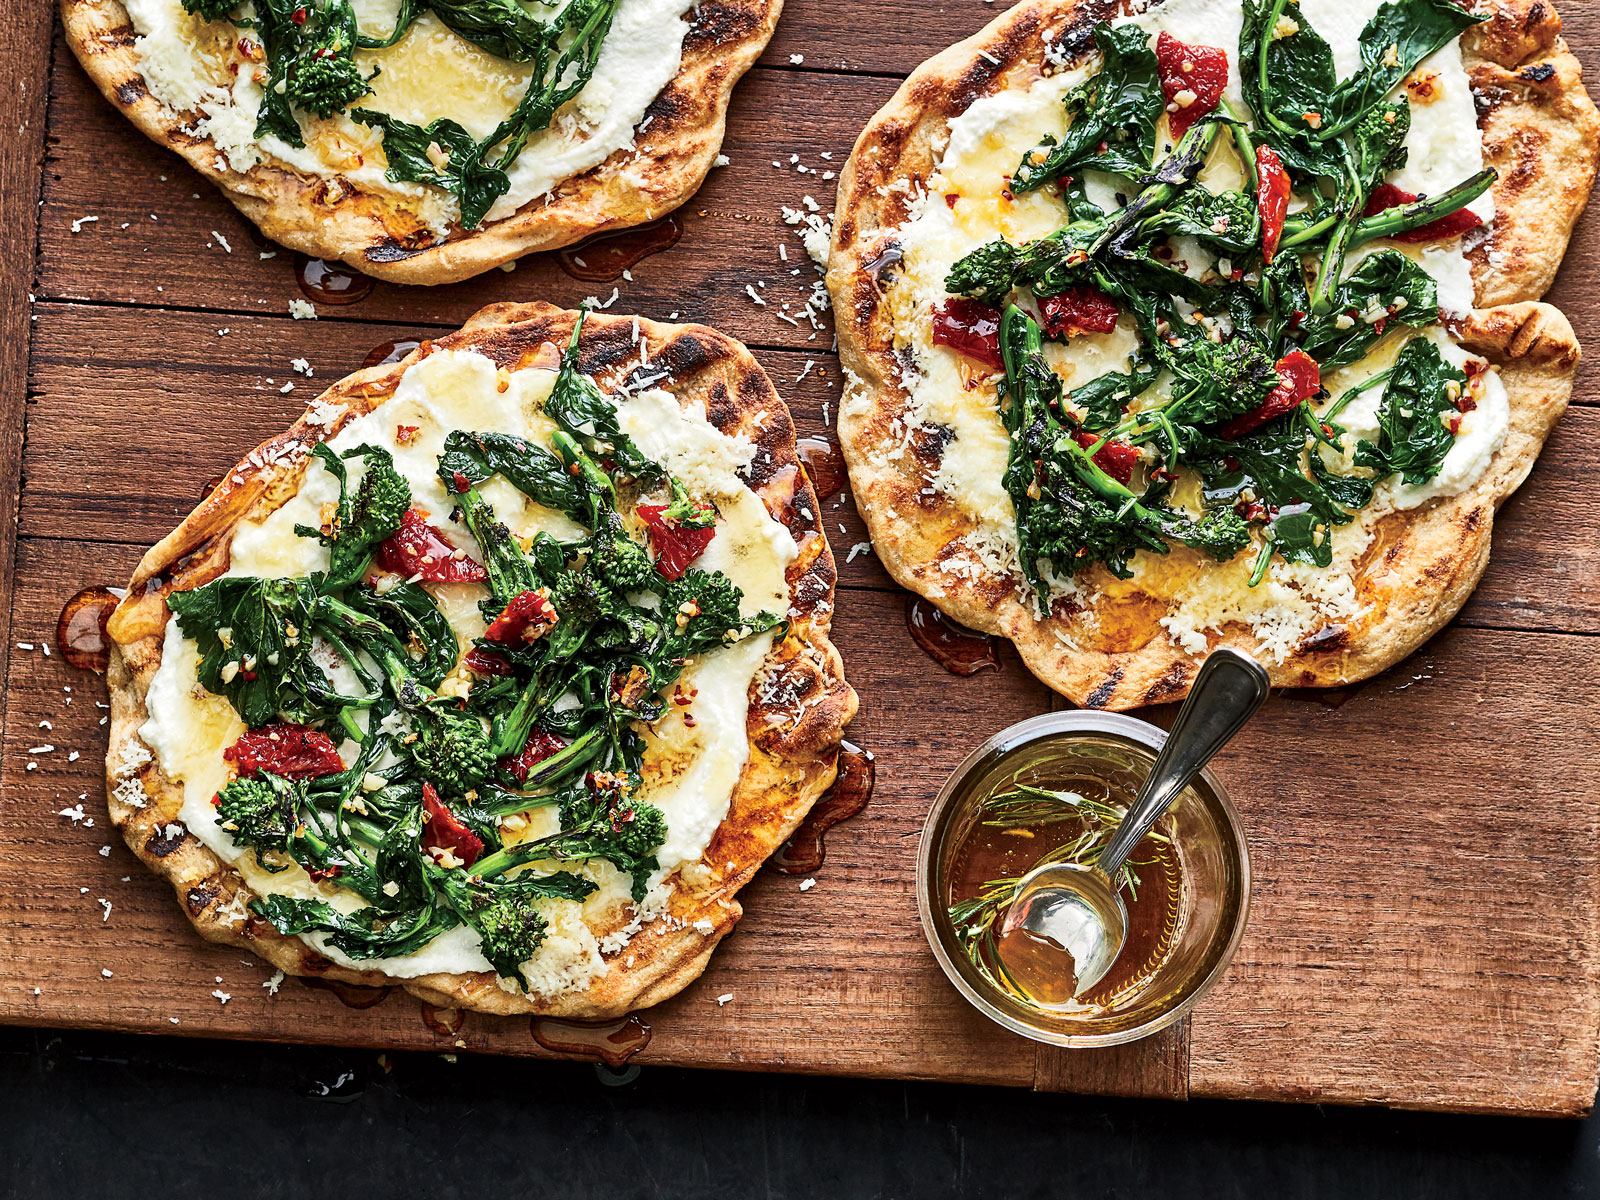 Grilled Flatbreads with Broccoli Rabe